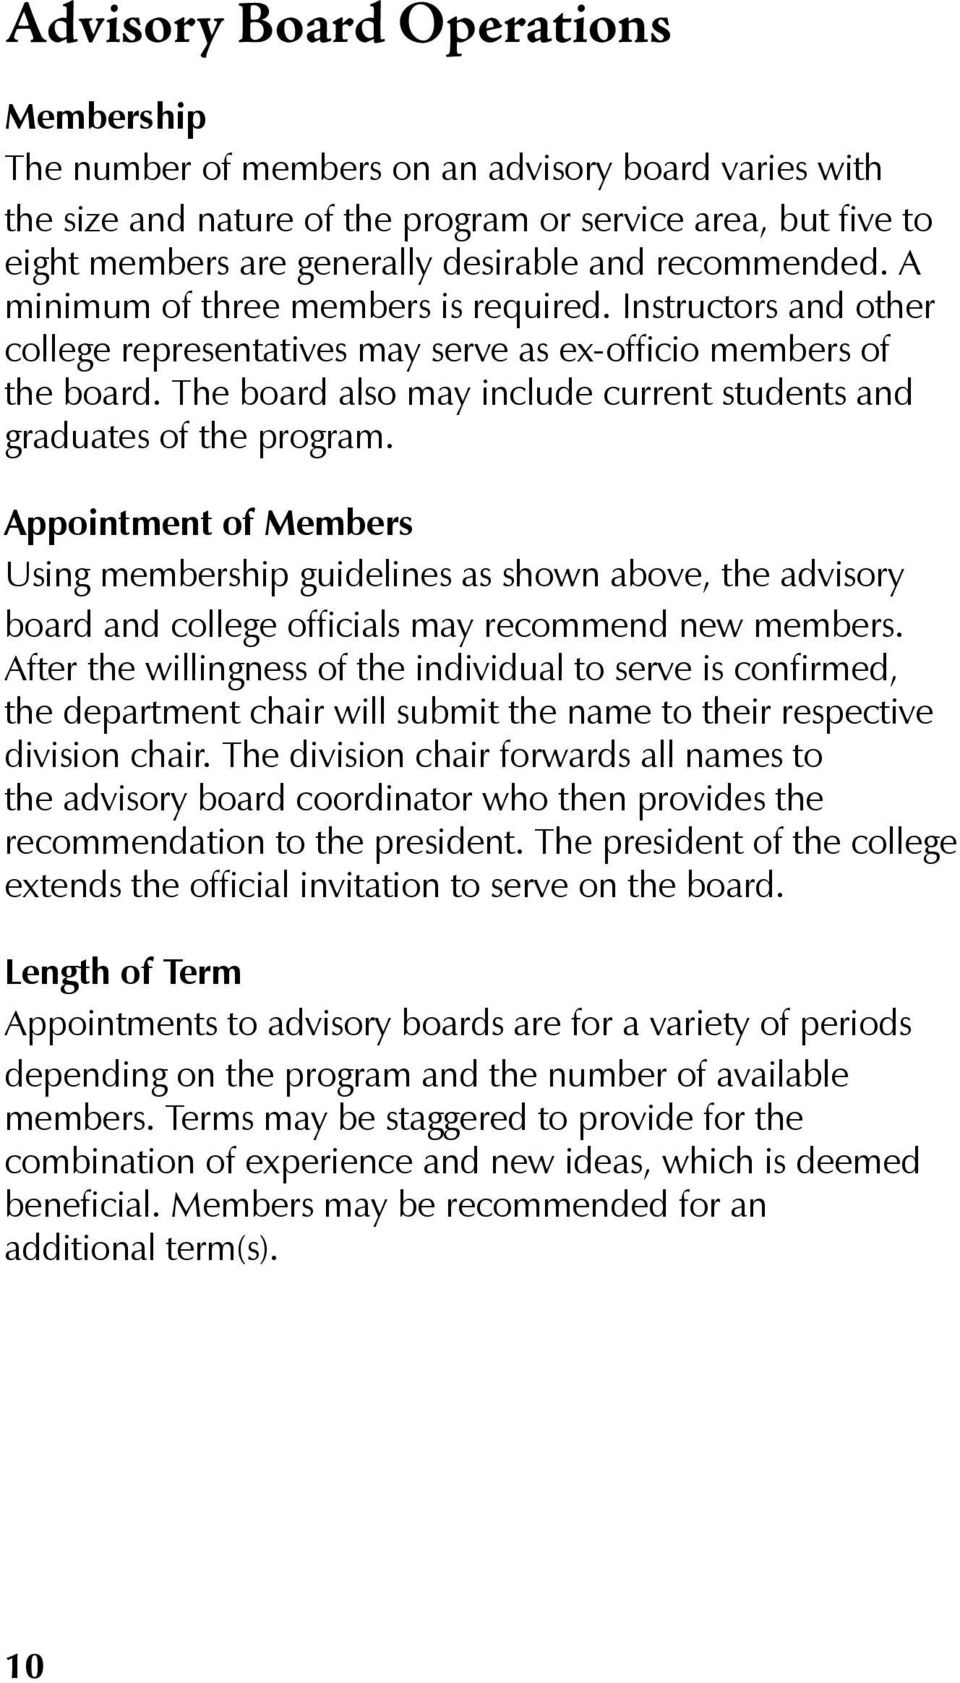 The board also may include current students and graduates of the program.